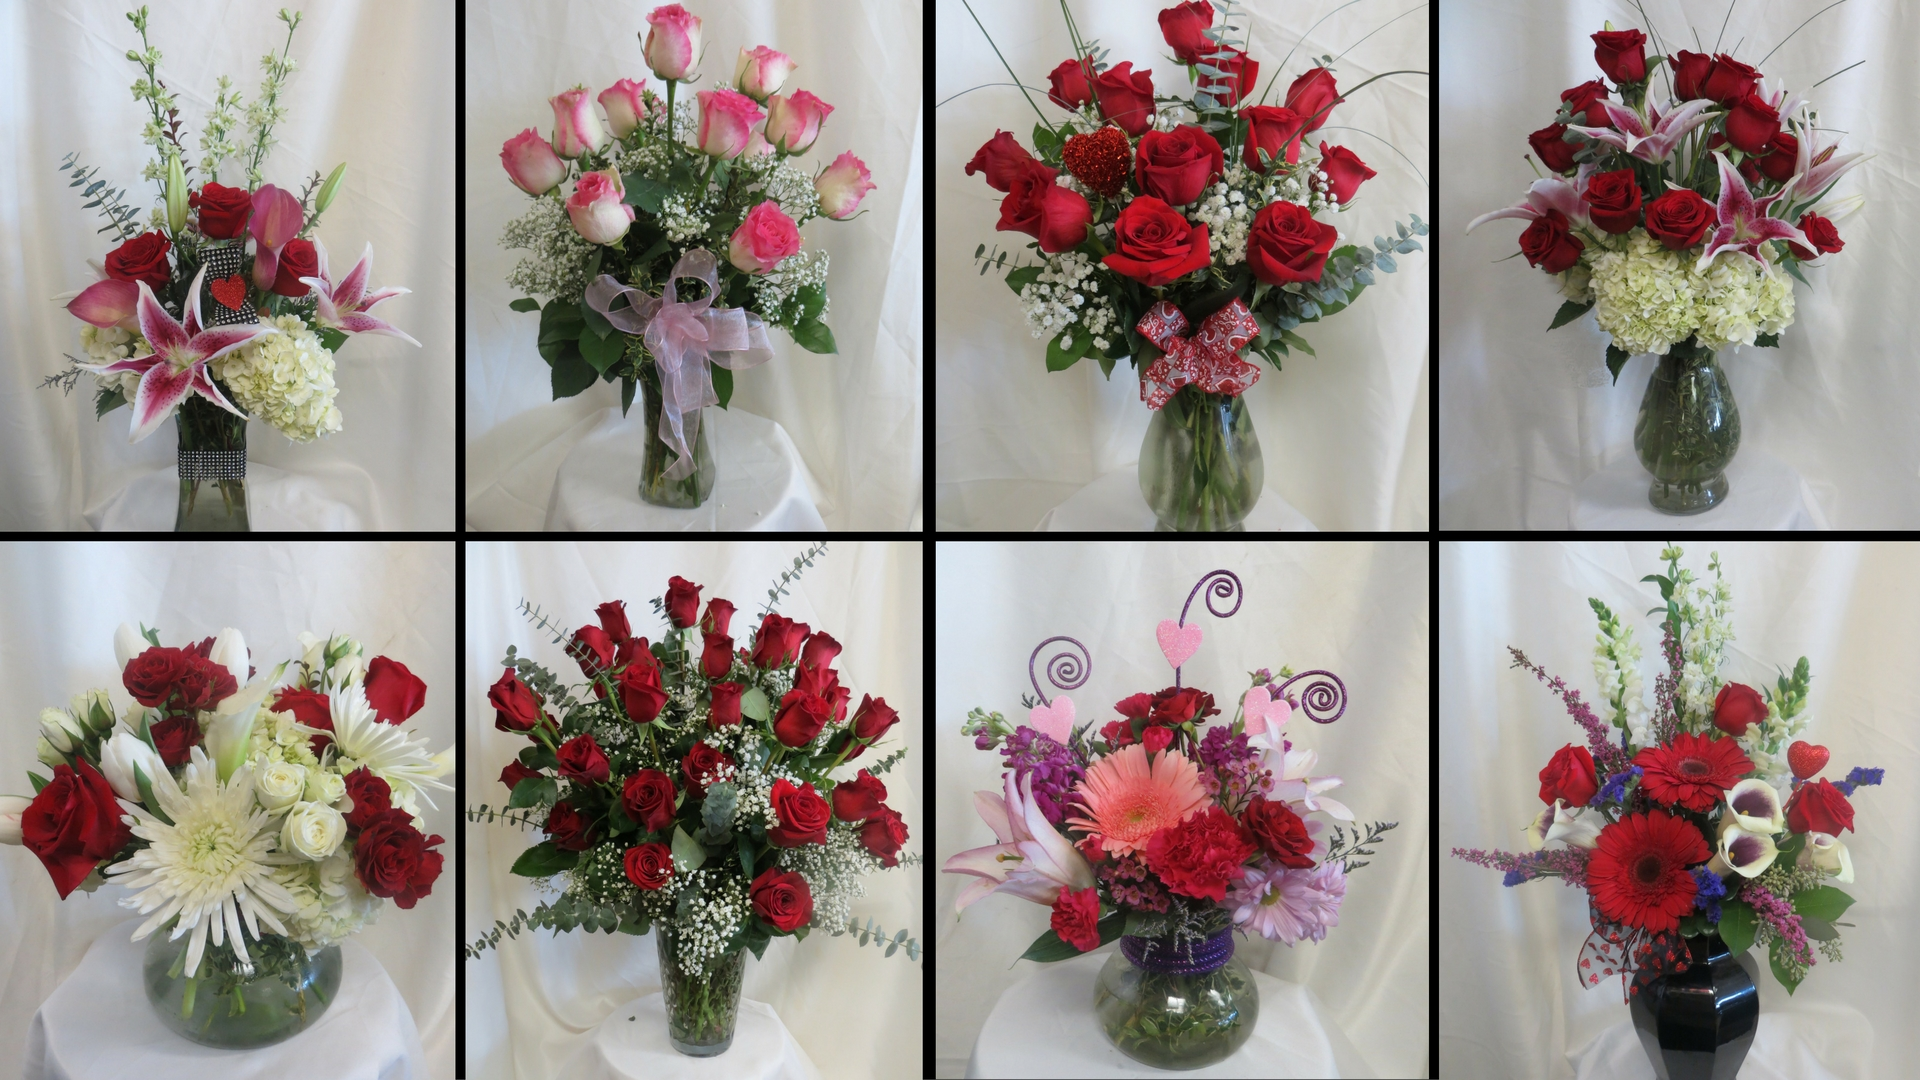 Make plans for valentines day and dont forget the flowers flowers for valentines day arrangements houston tx 2 izmirmasajfo